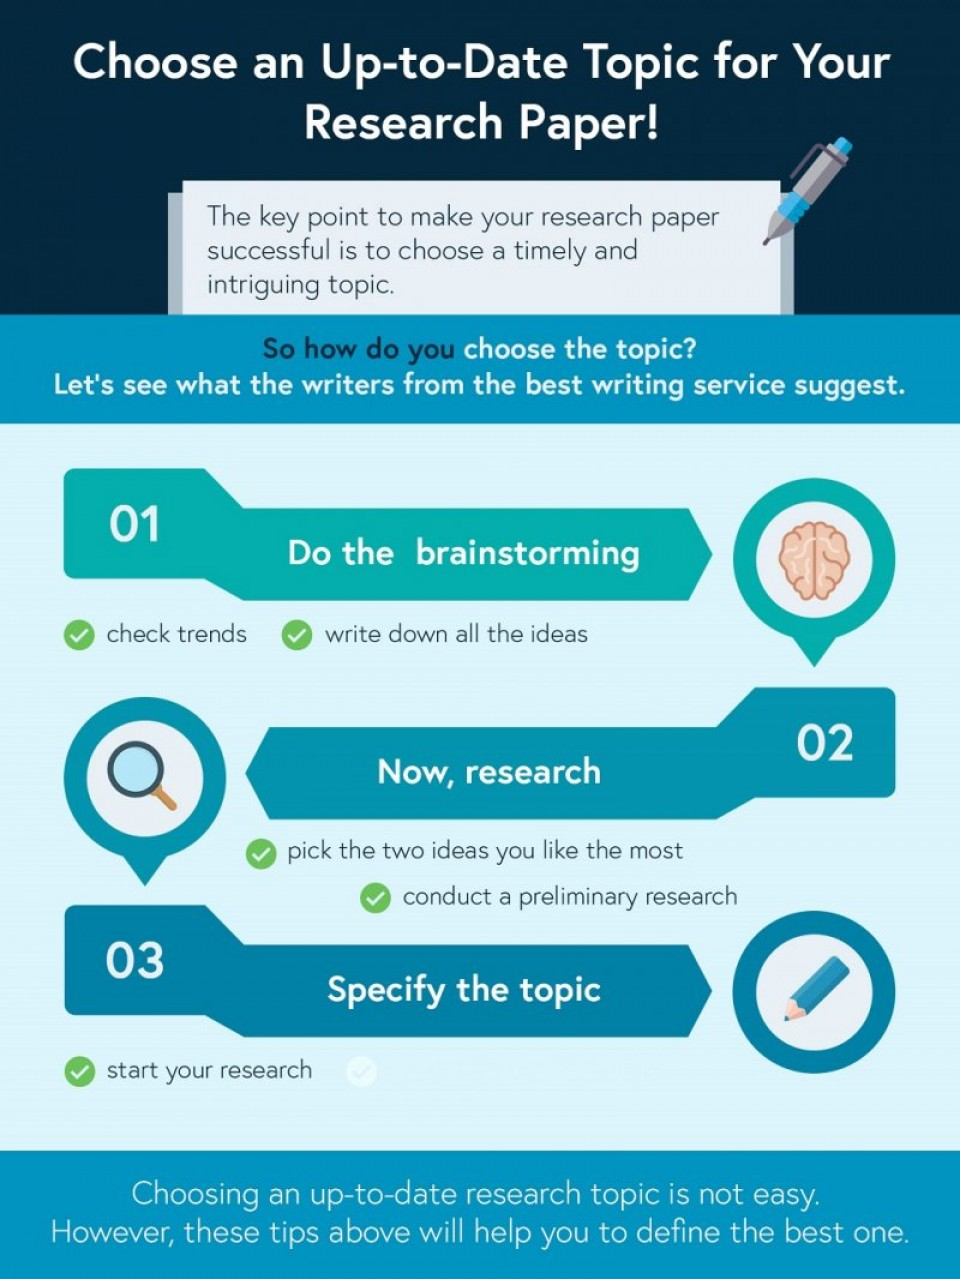 006 Research Paper Infographic Writing Dreaded Service Services In India Best Academic Online 960